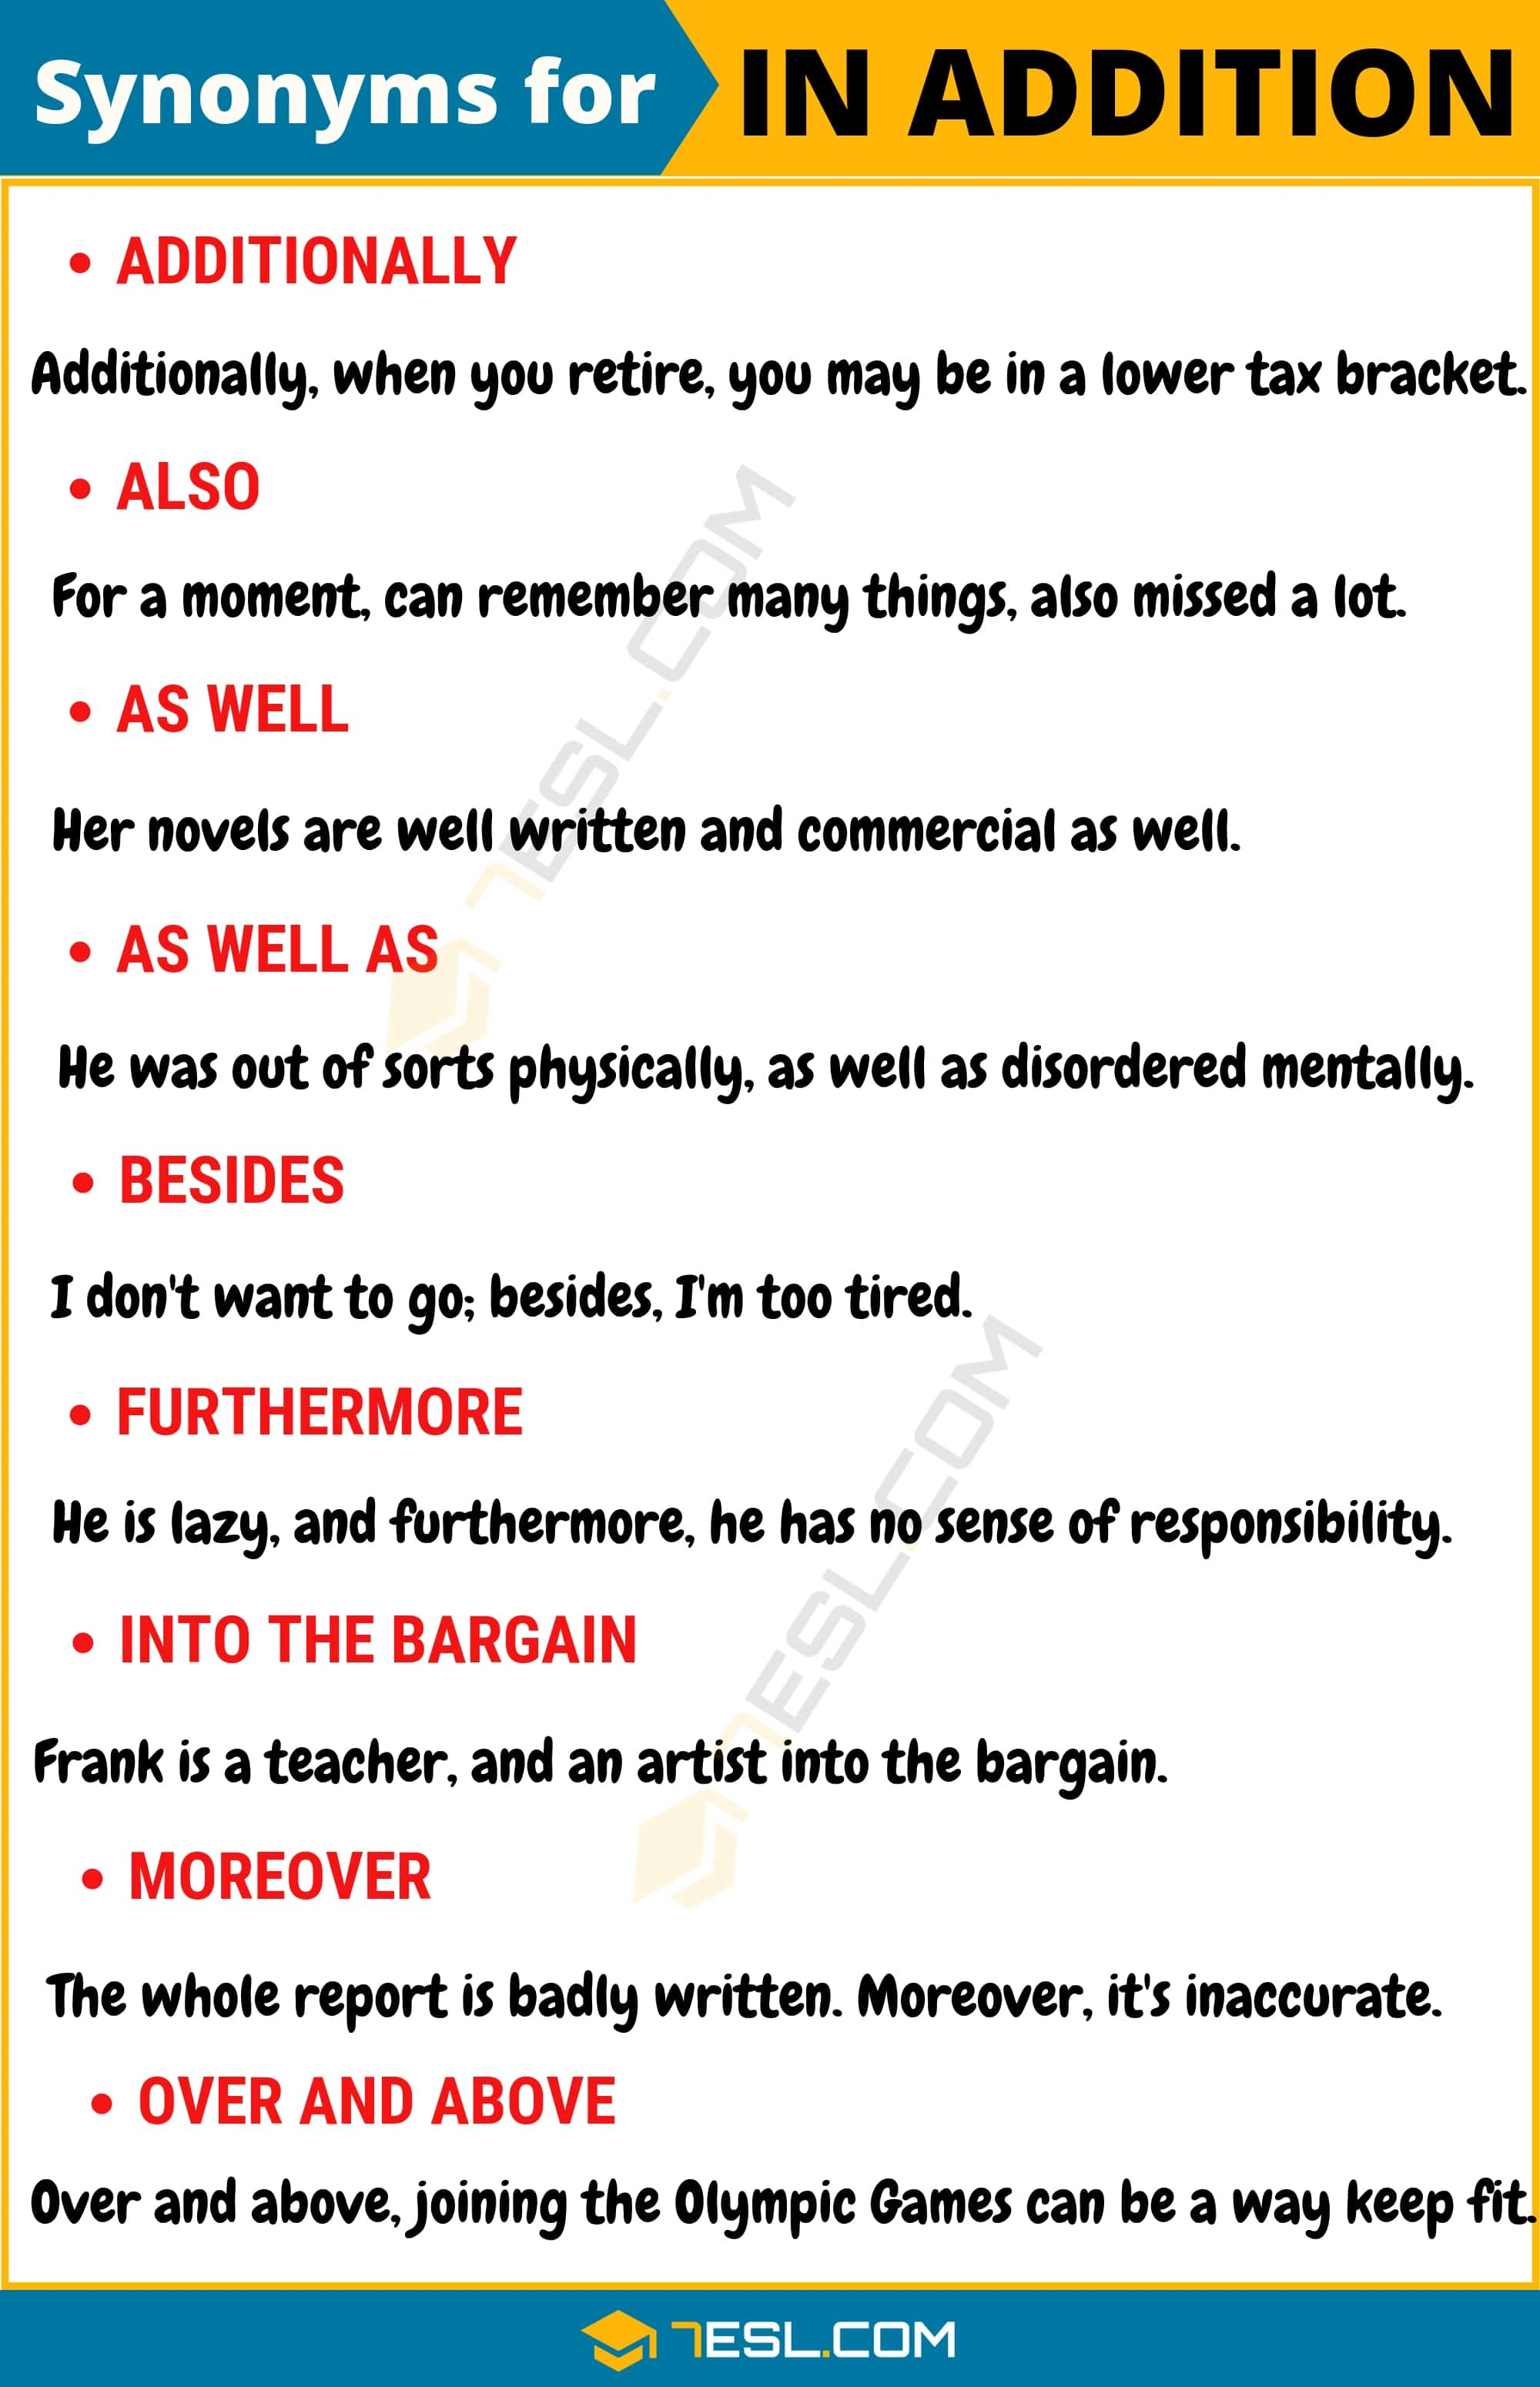 IN ADDITION Synonym: List of 80+ Synonyms for In addition with Useful Examples